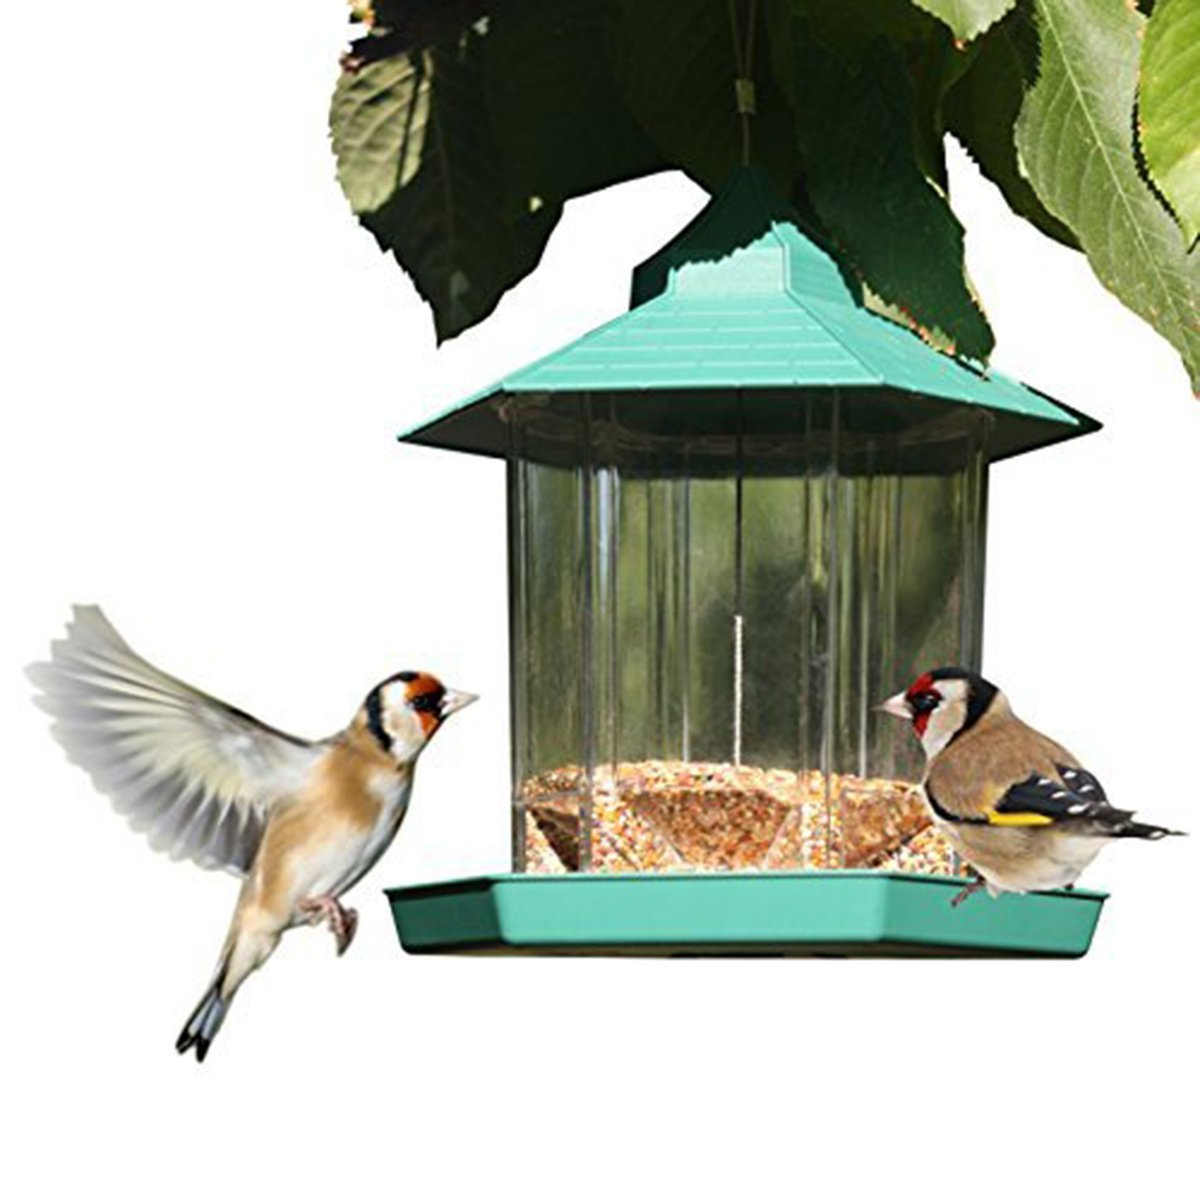 PetsN'all Gazebo Birdfeeder Transperant Hanging Wild Birdfeeder for Garden Back Deck Yard... by PetsN'all